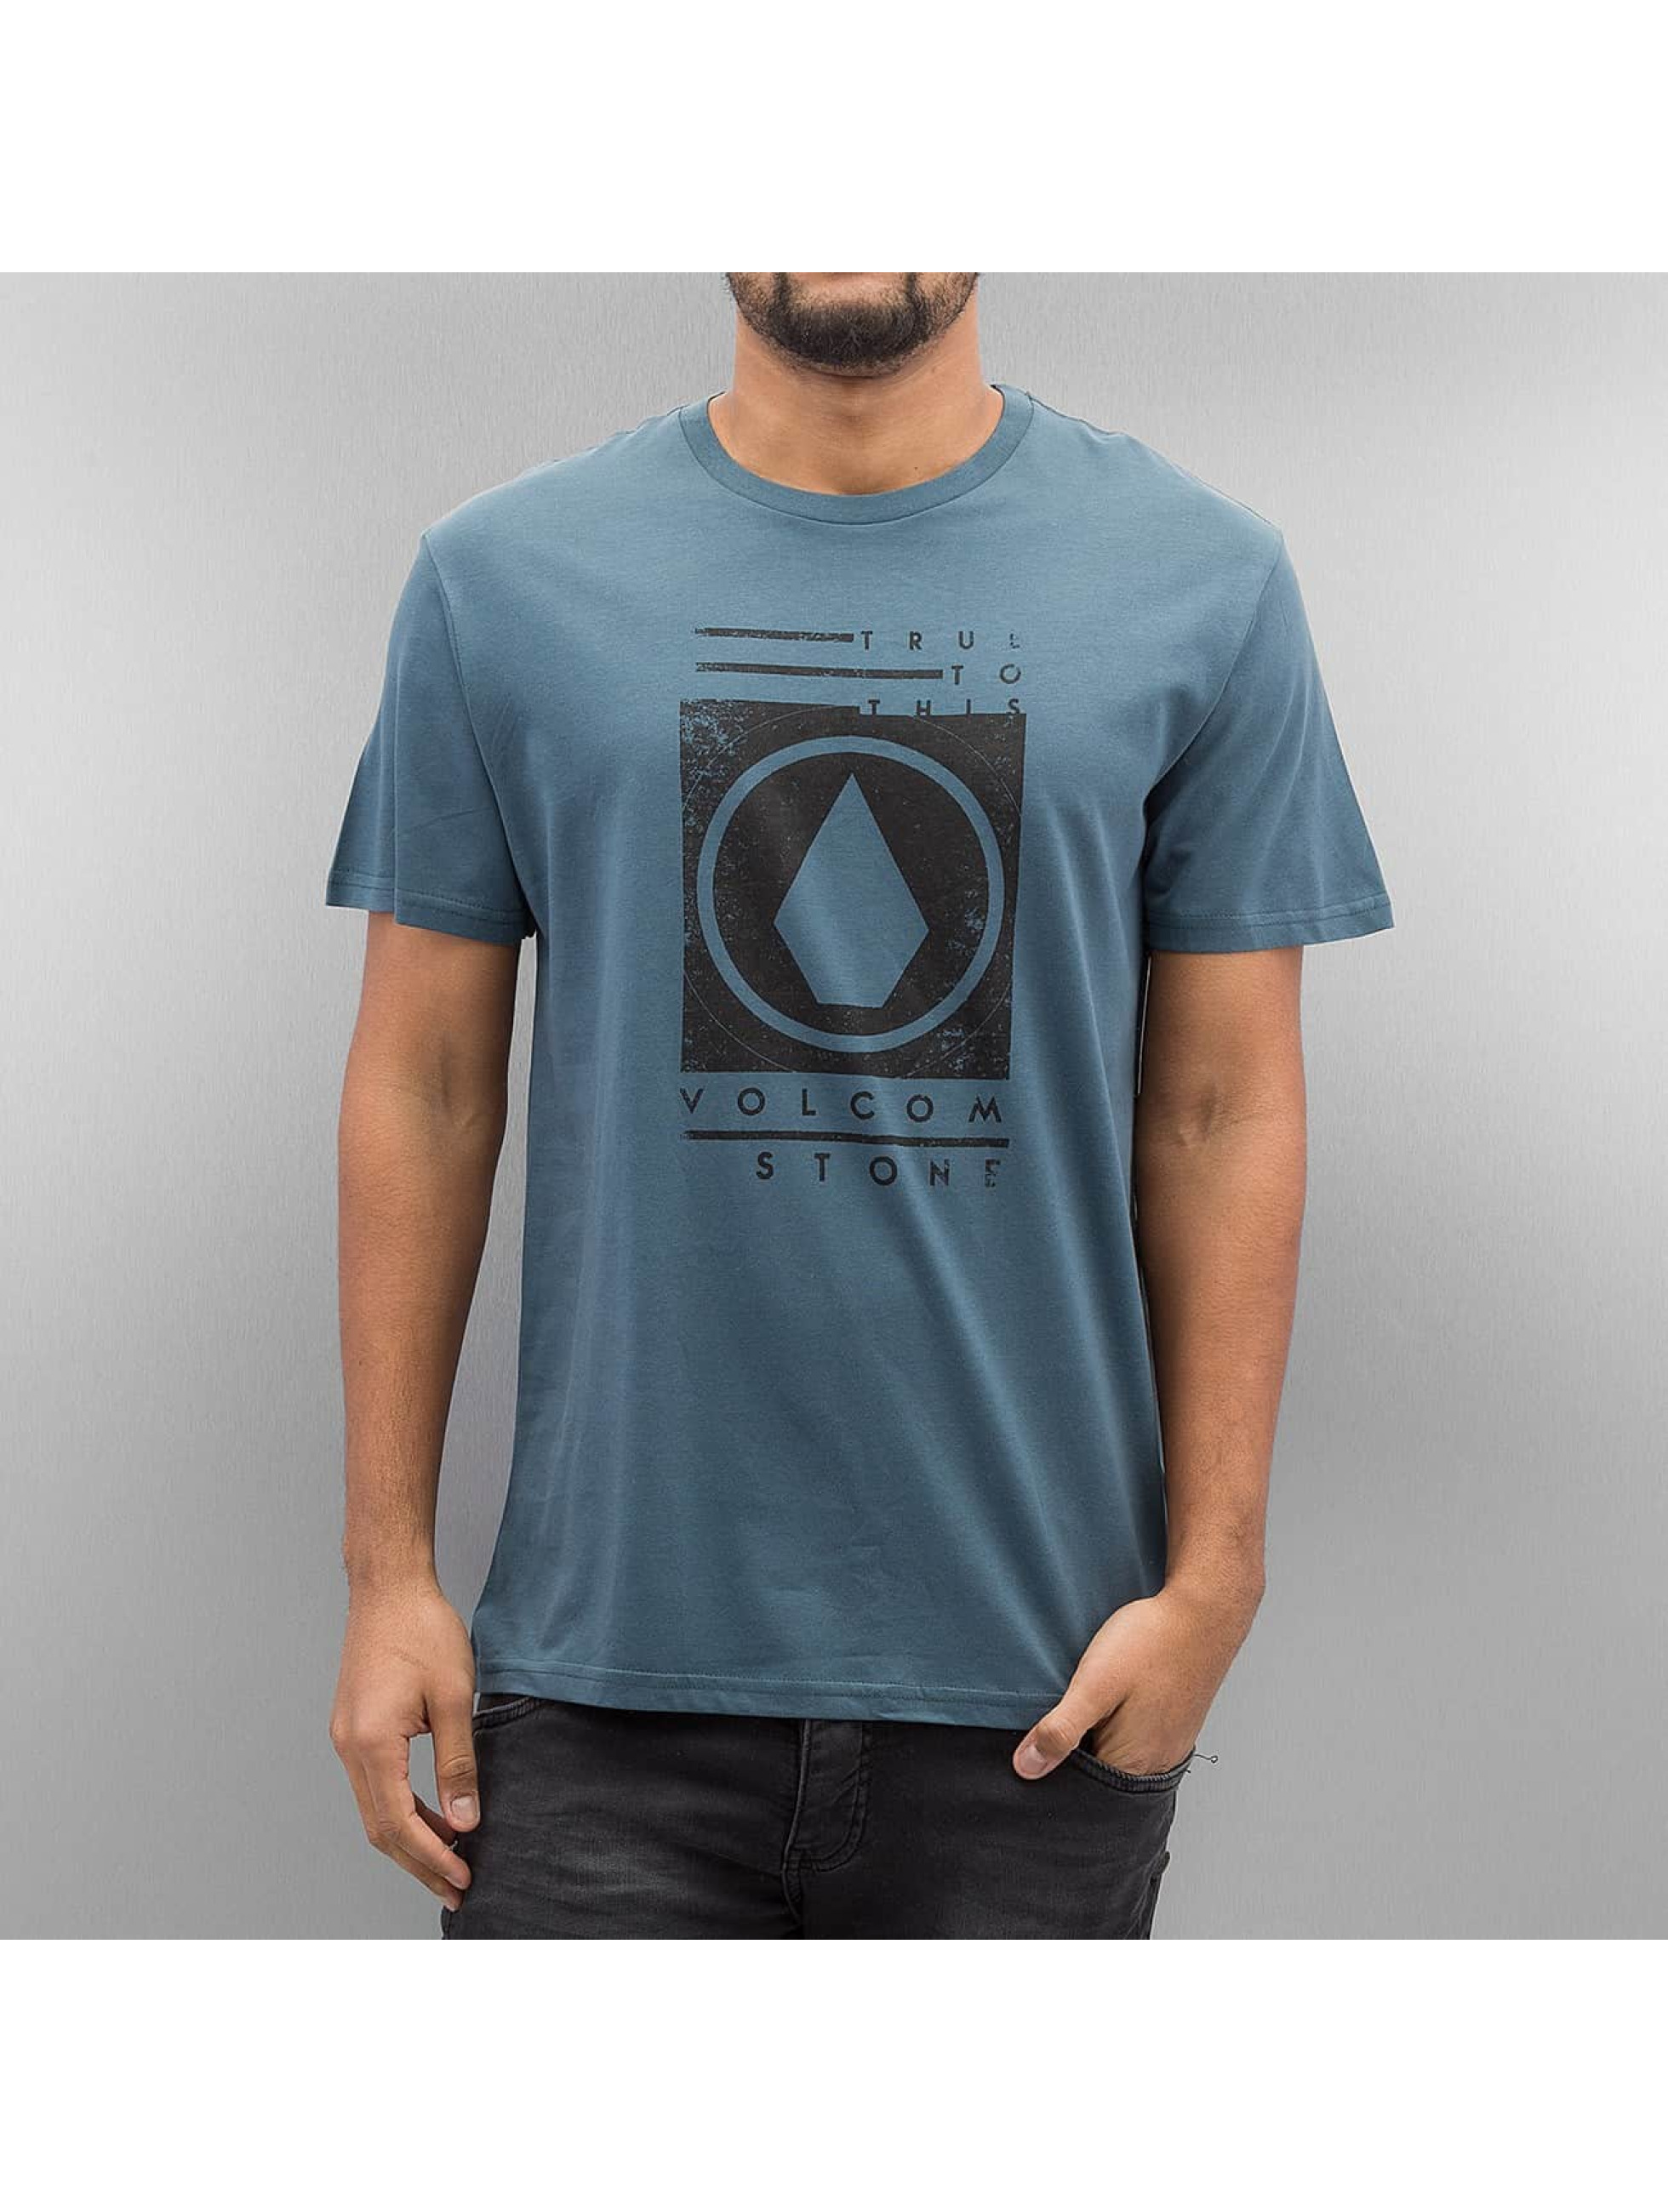 Volcom T-Shirt Stone Stamp blue